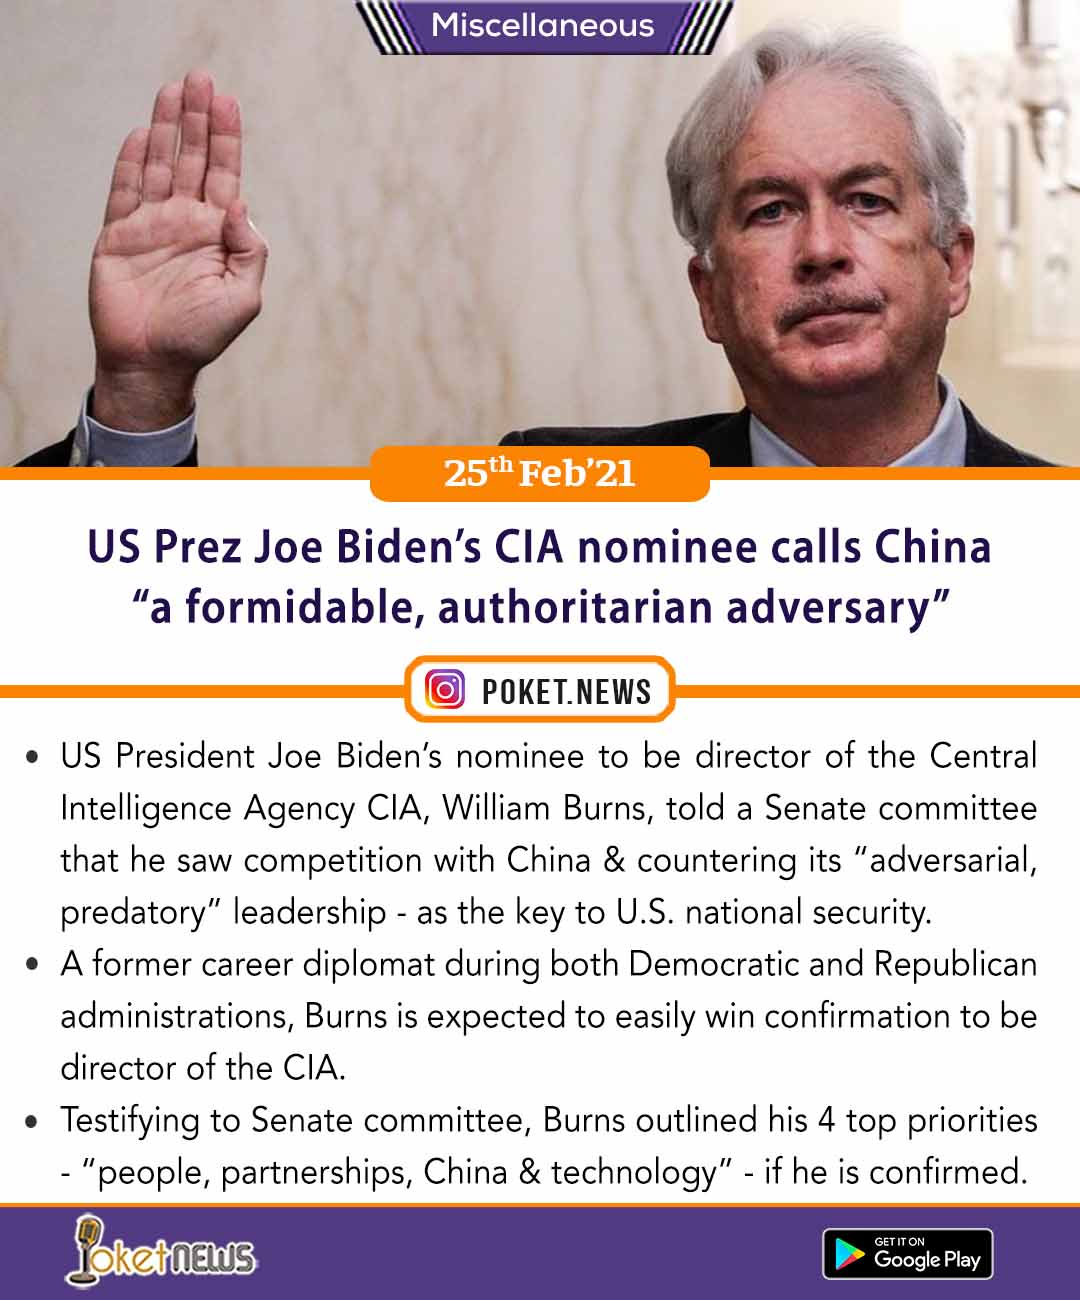 "US Prez Joe Biden's CIA nominee William Burns calls China ""a formidable, authoritarian adversary"""